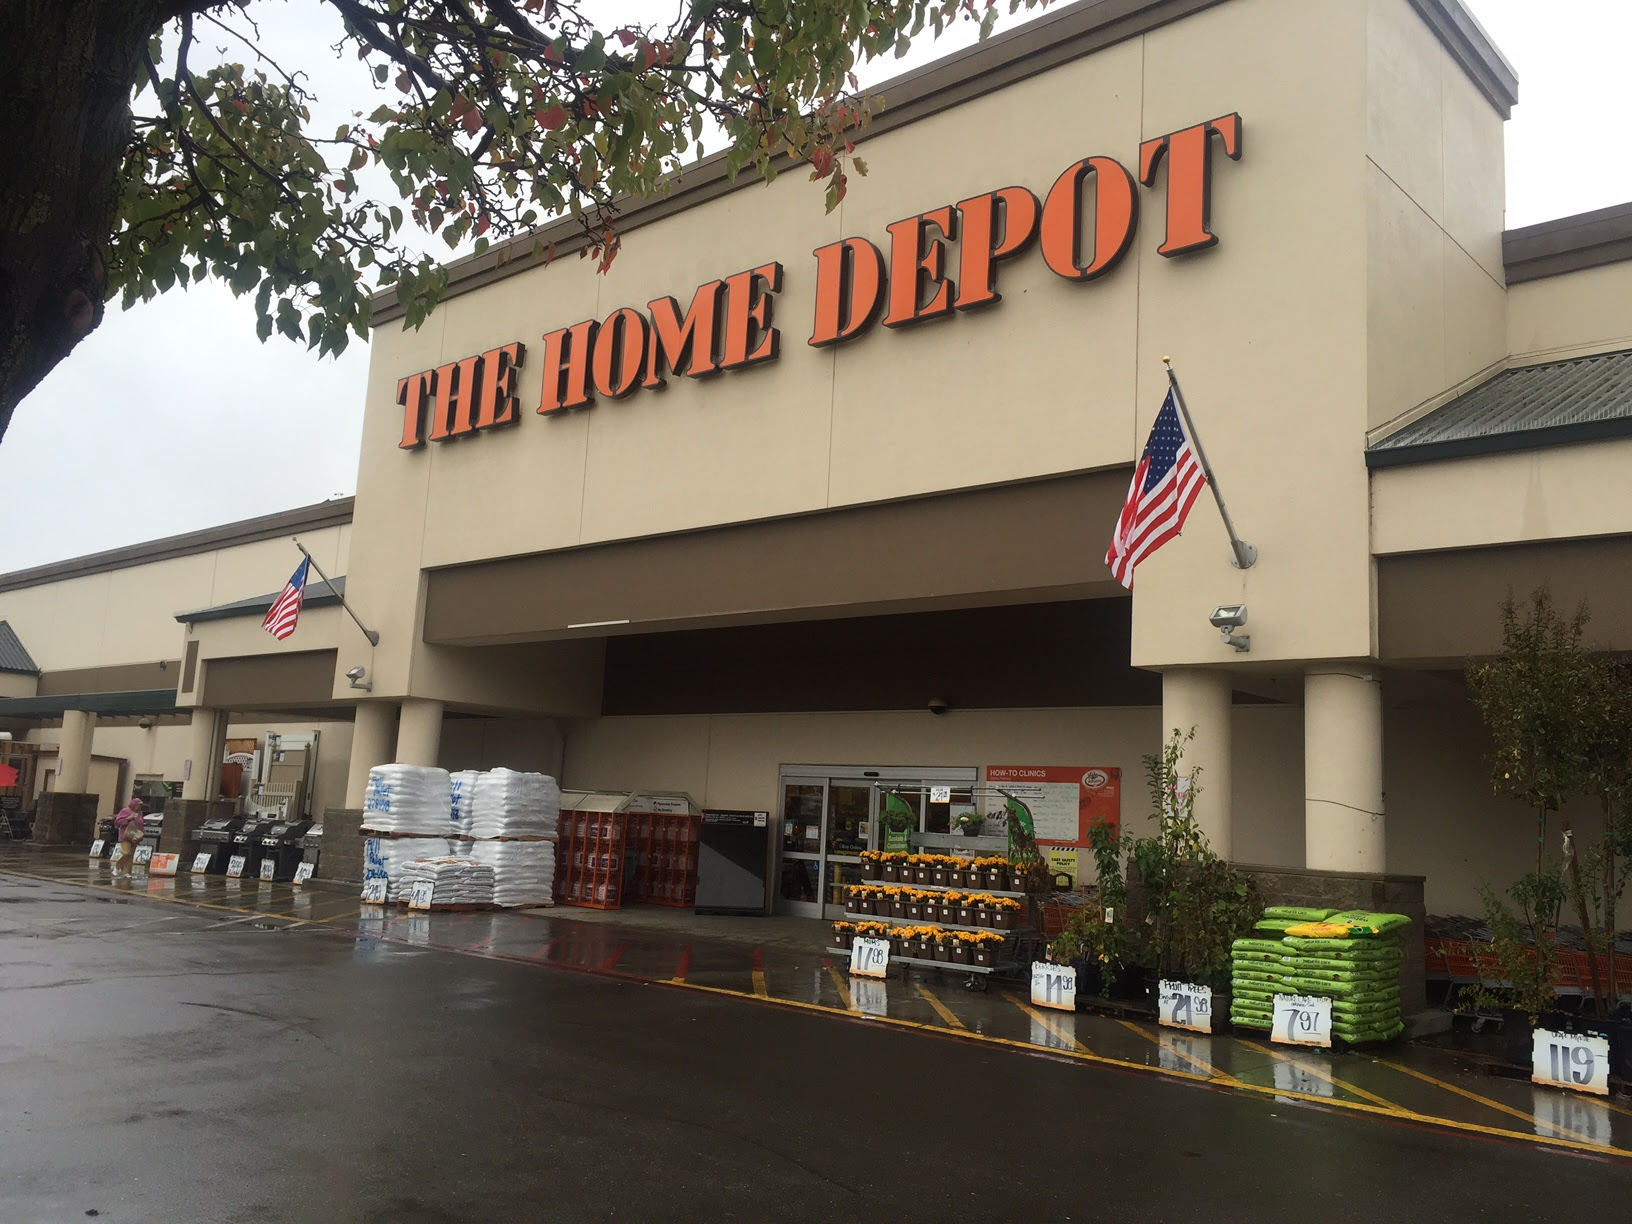 The Home Depot 5859 Antelope Rd Sacramento CA Home Depot MapQuest